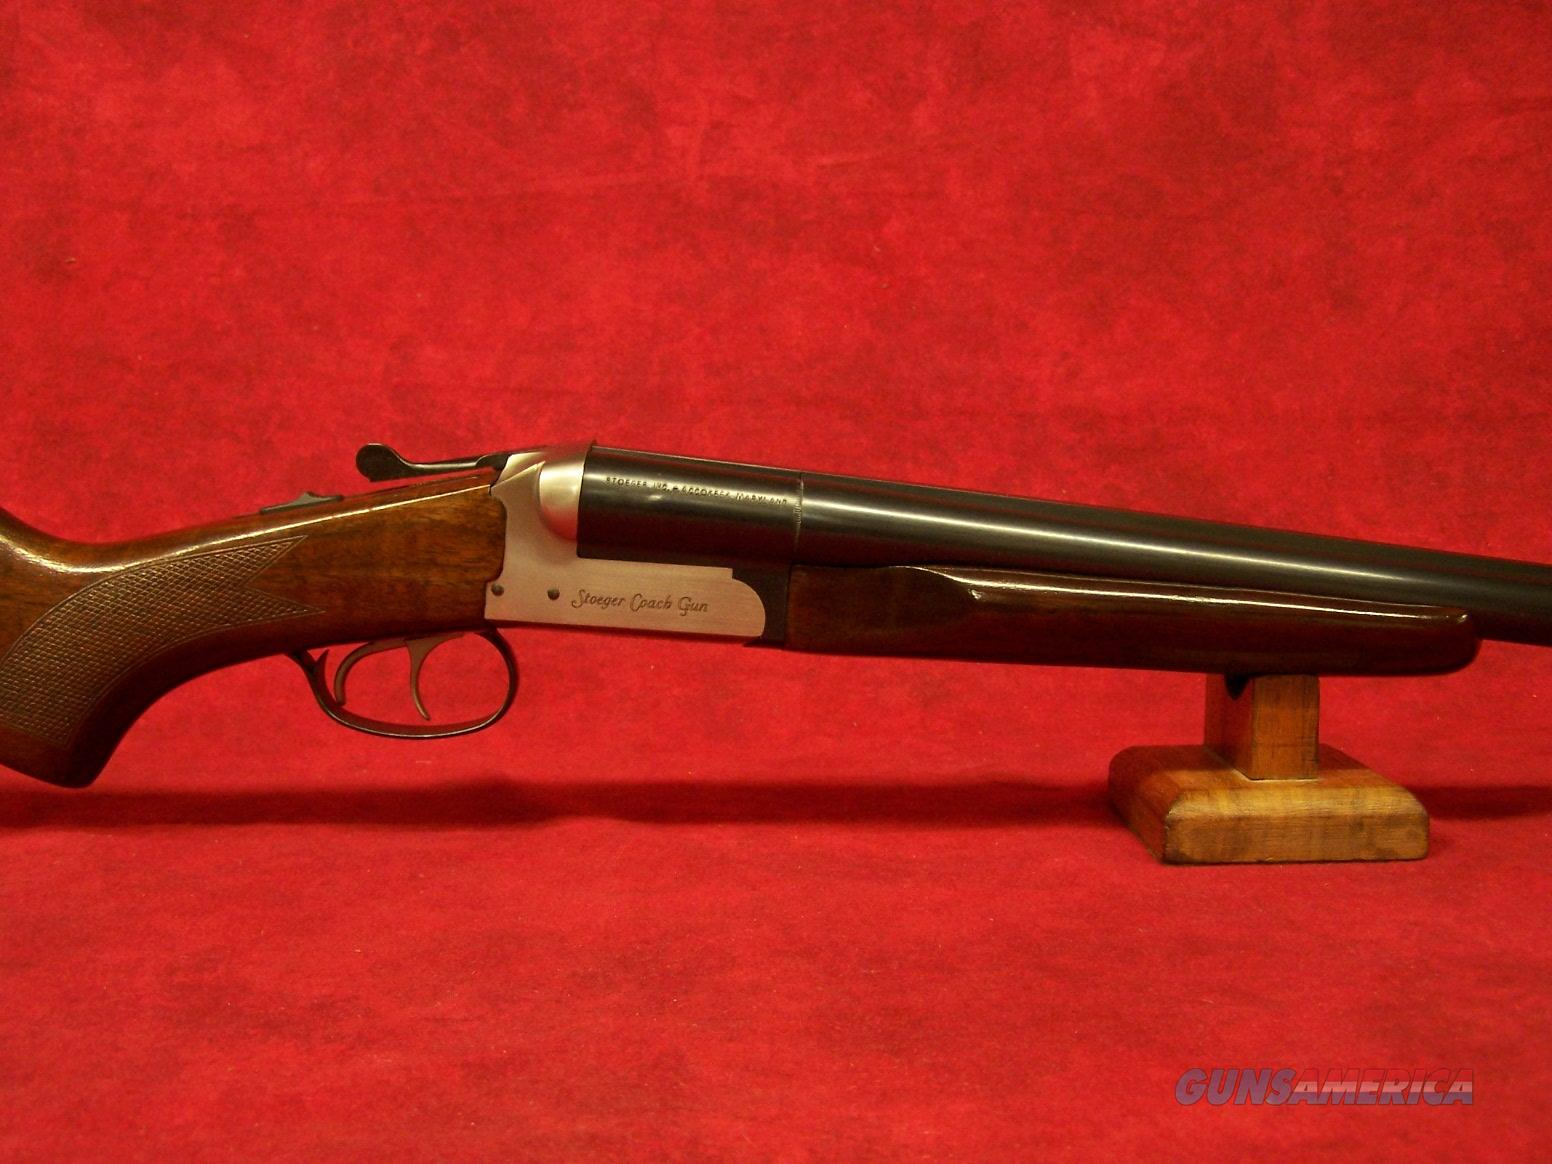 "Stoeger Coach Gun Supreme 12 Ga 3"" SxS AA-Grade Gloss Walnut, Blue /Stainless Receiver 20"" Barrel (31483)  Guns > Shotguns > Stoeger Shotguns"